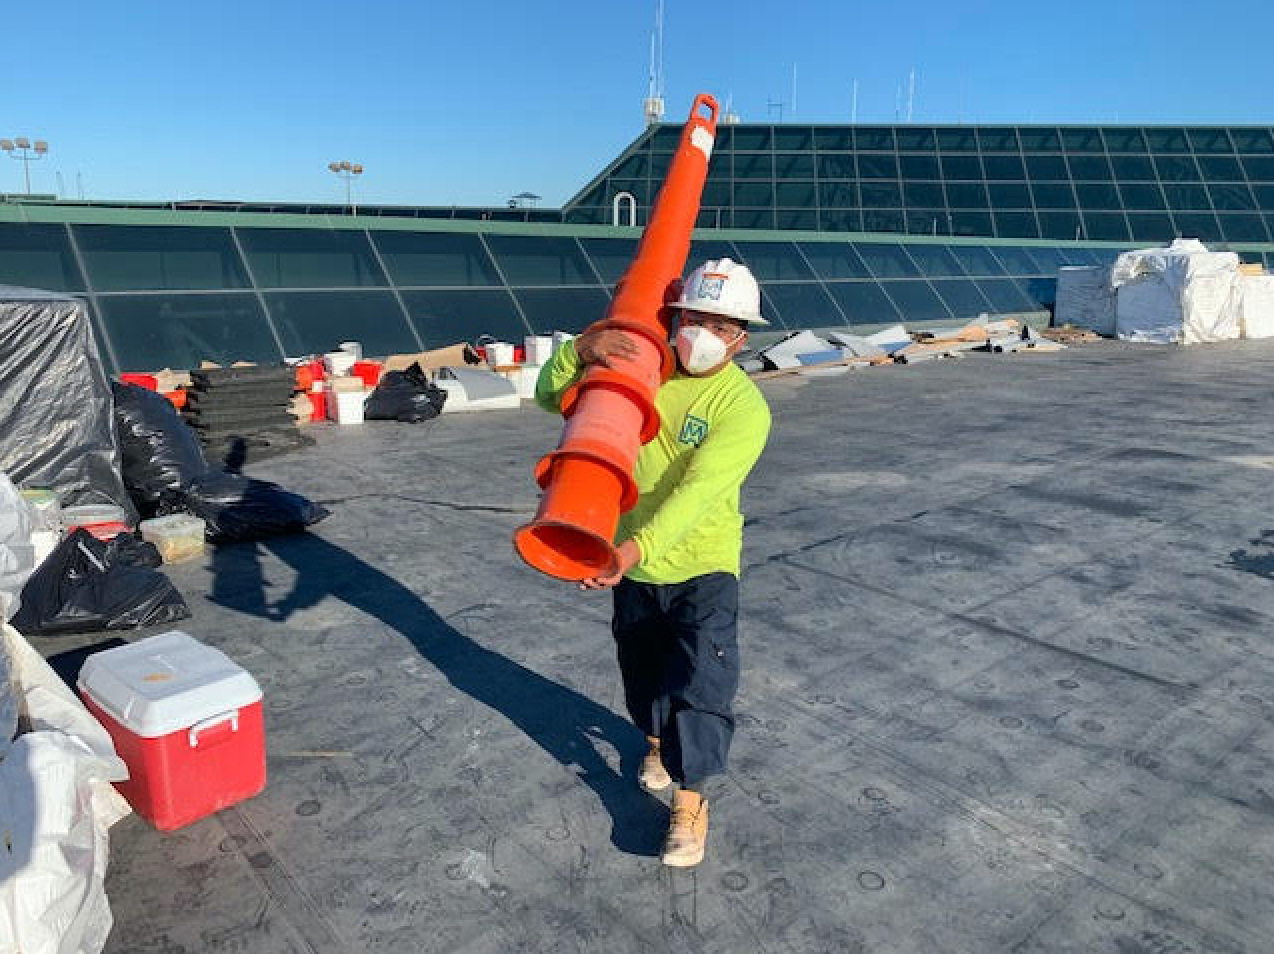 maxwell roofing specialist on commercial roof carrying a large stack of orange caution cones